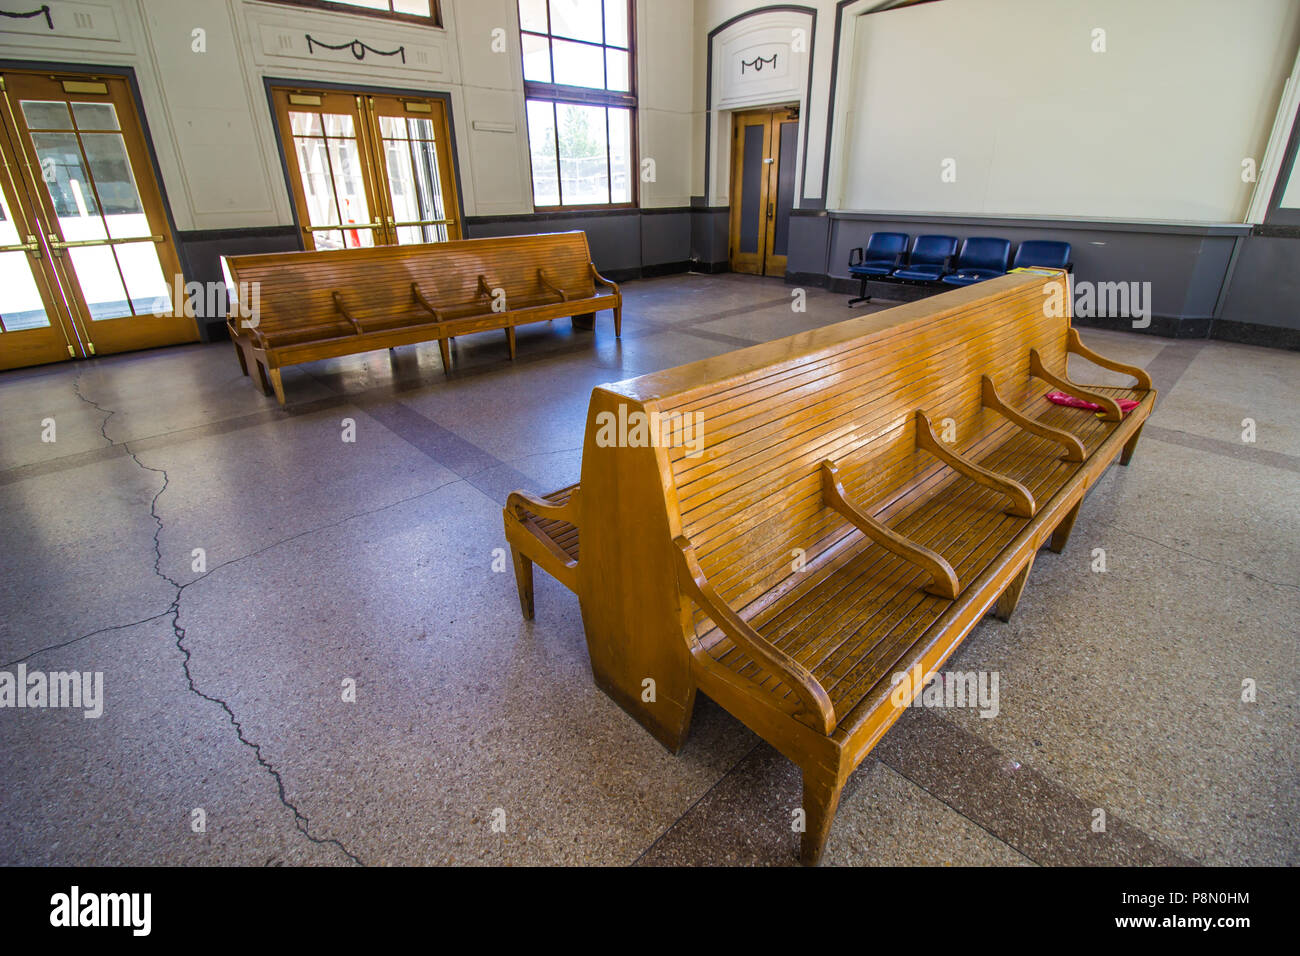 Old Wooden Benches In Railroad Depot Waiting Area - Stock Image